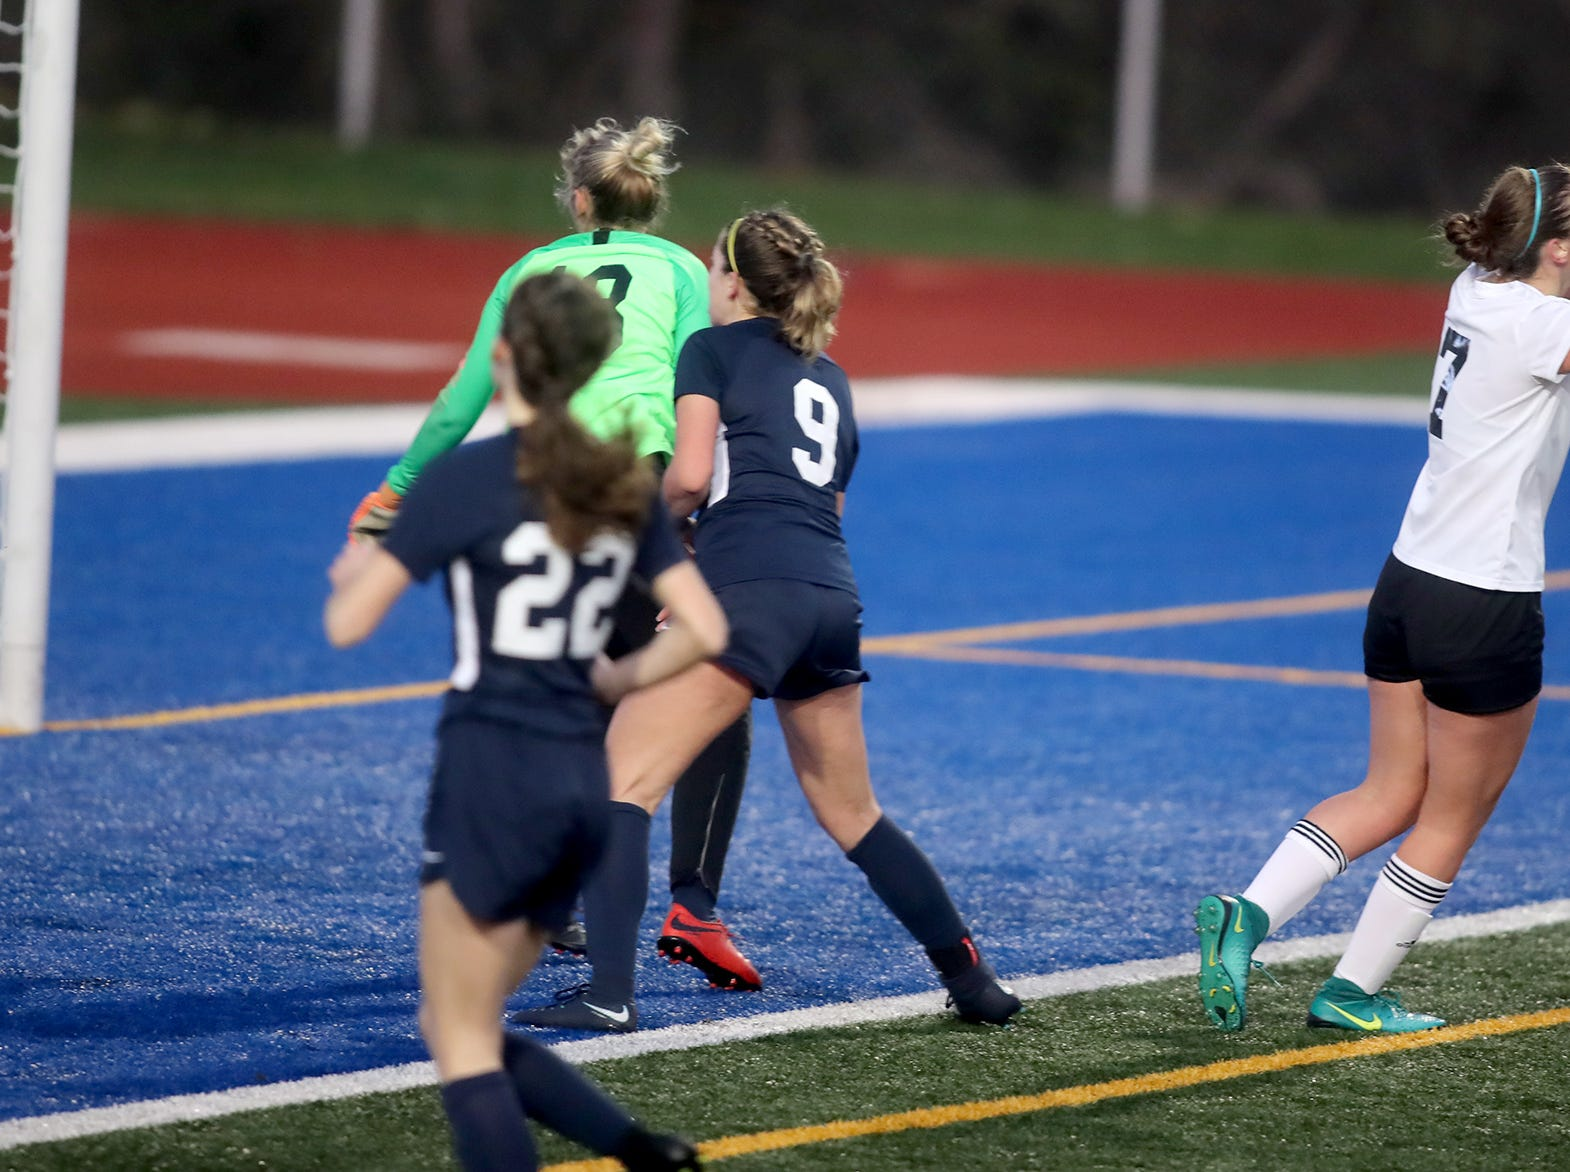 Klahowya lost to King's Way  in overtime in the 2018 Girls Soccer State Championship 1A semifinal game at Shoreline Stadium on Friday, November 16, 2018. Klahowya's Hope Martin, right, reacts after missing an open net.